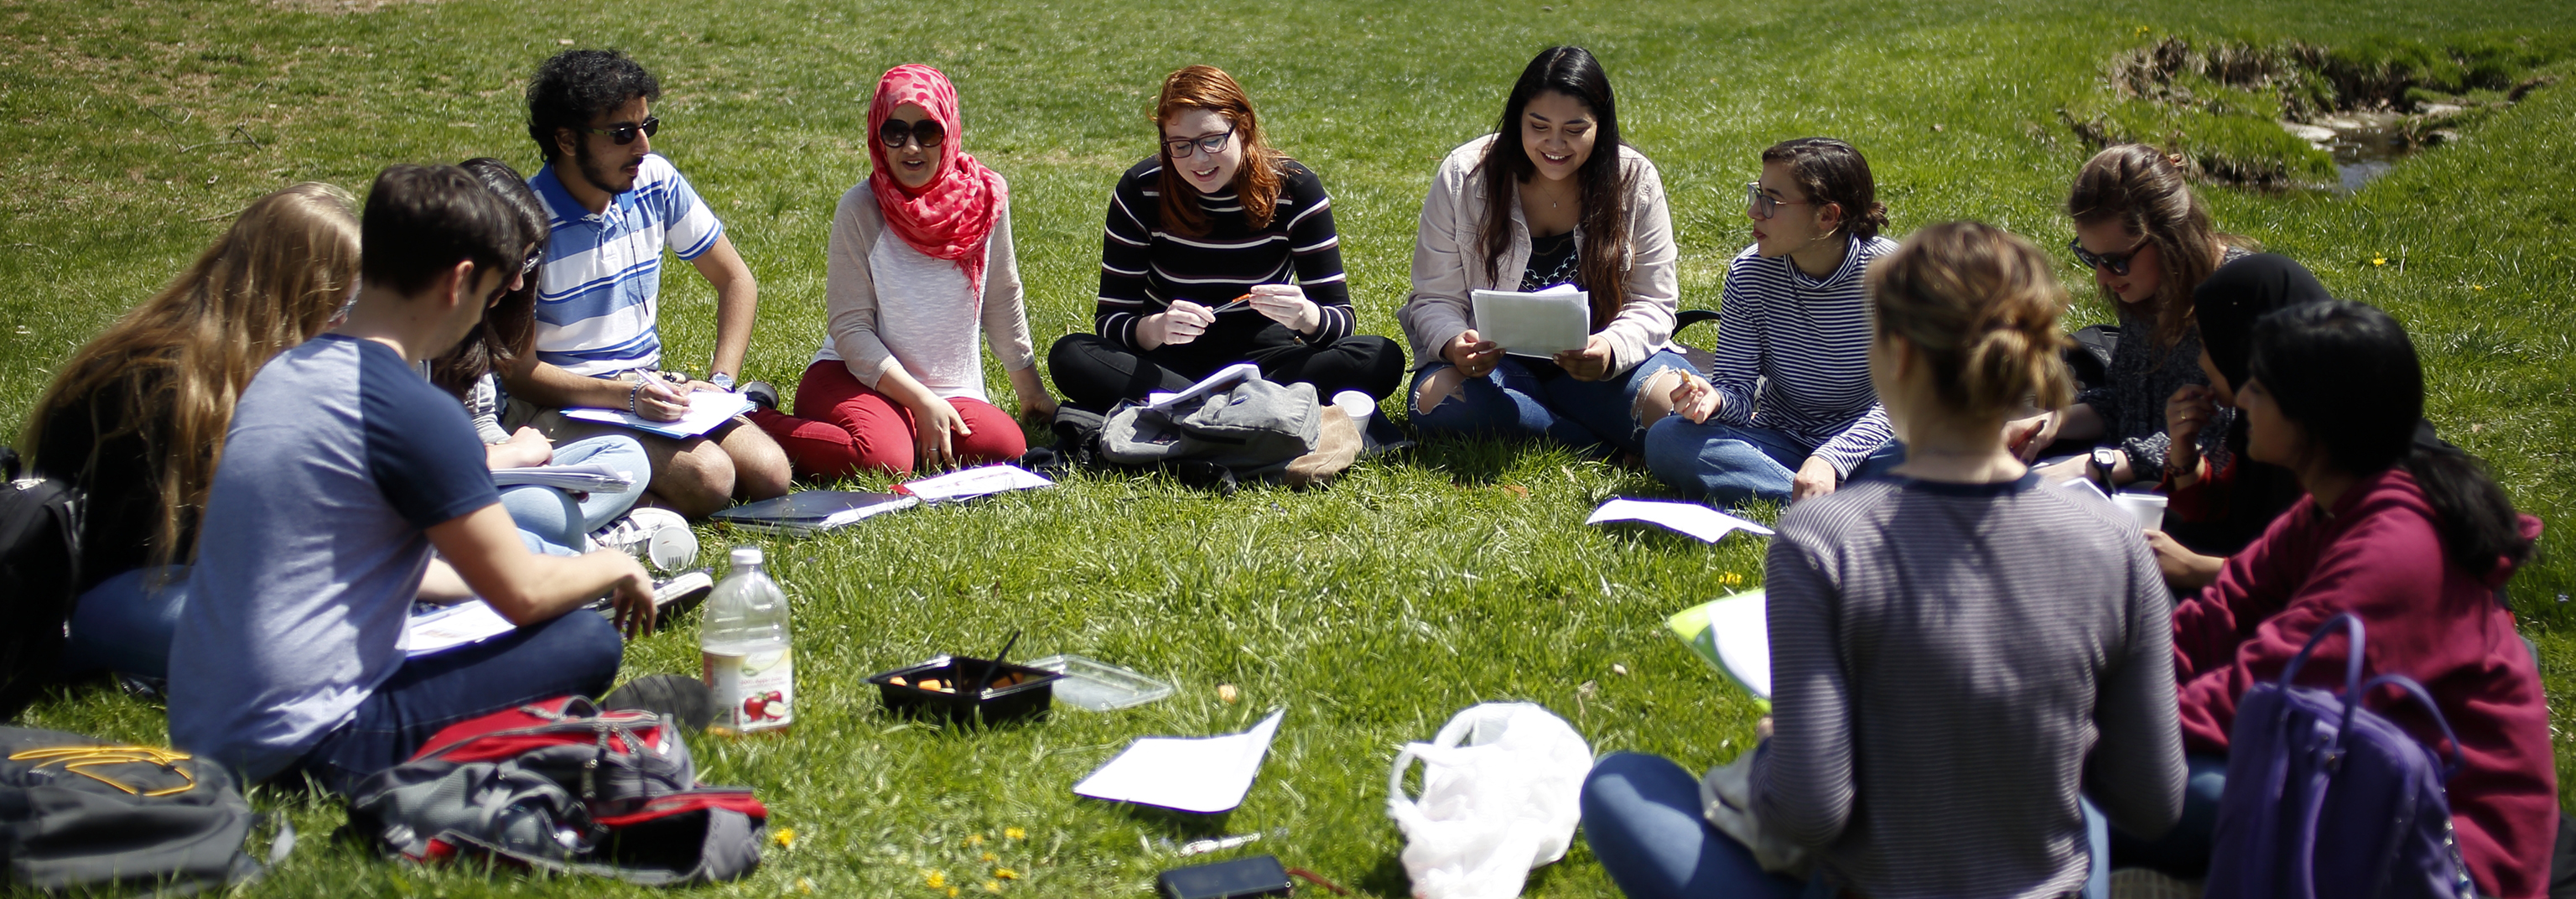 Students participate in an Arabic class, seated in front of Bryan House, taken on Wednesday, April 18, 2018.